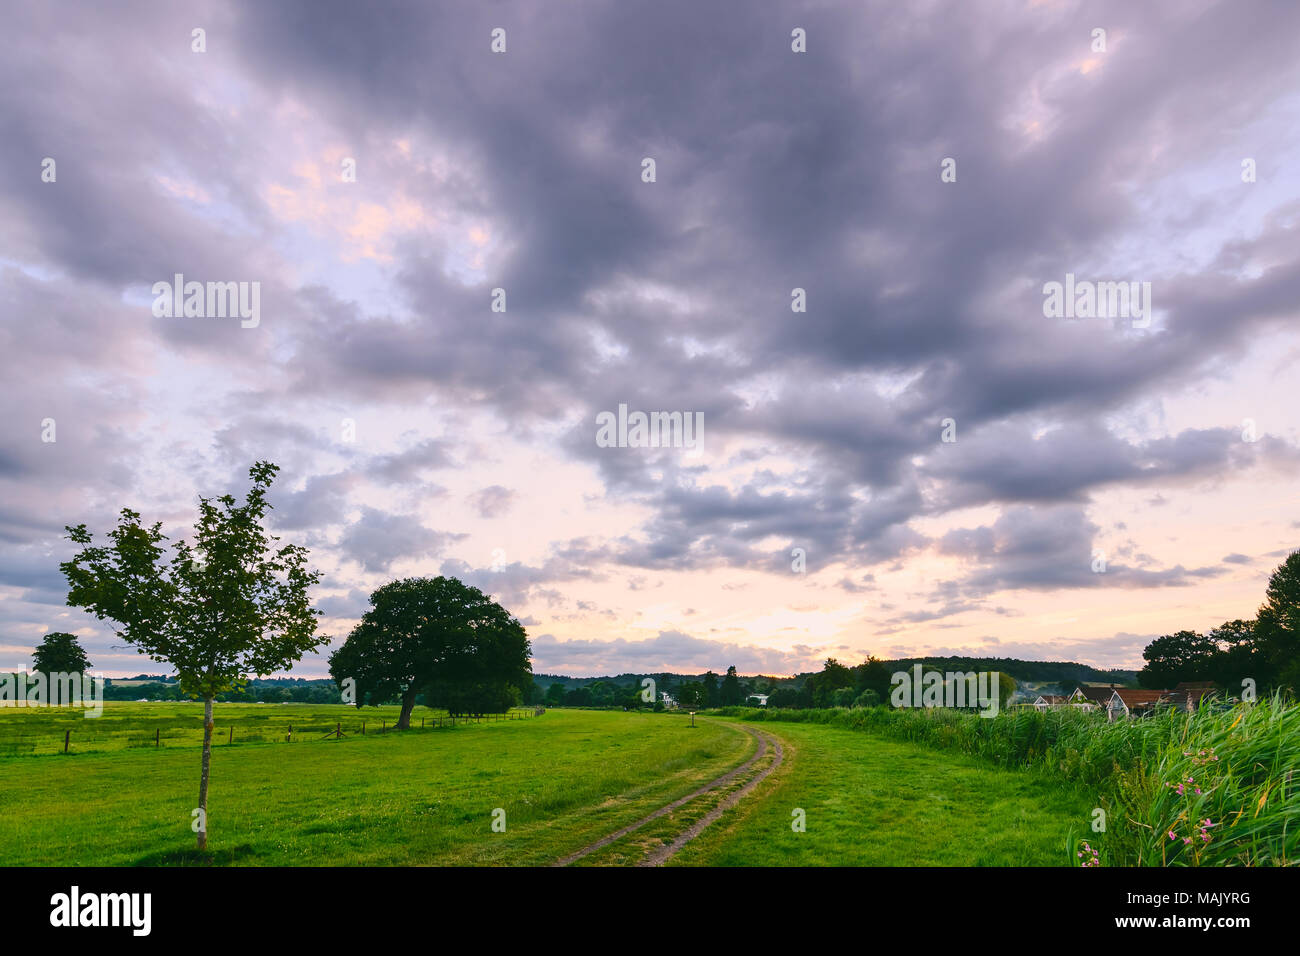 Summer evening in the fields by Hambeden Lock - Stock Image